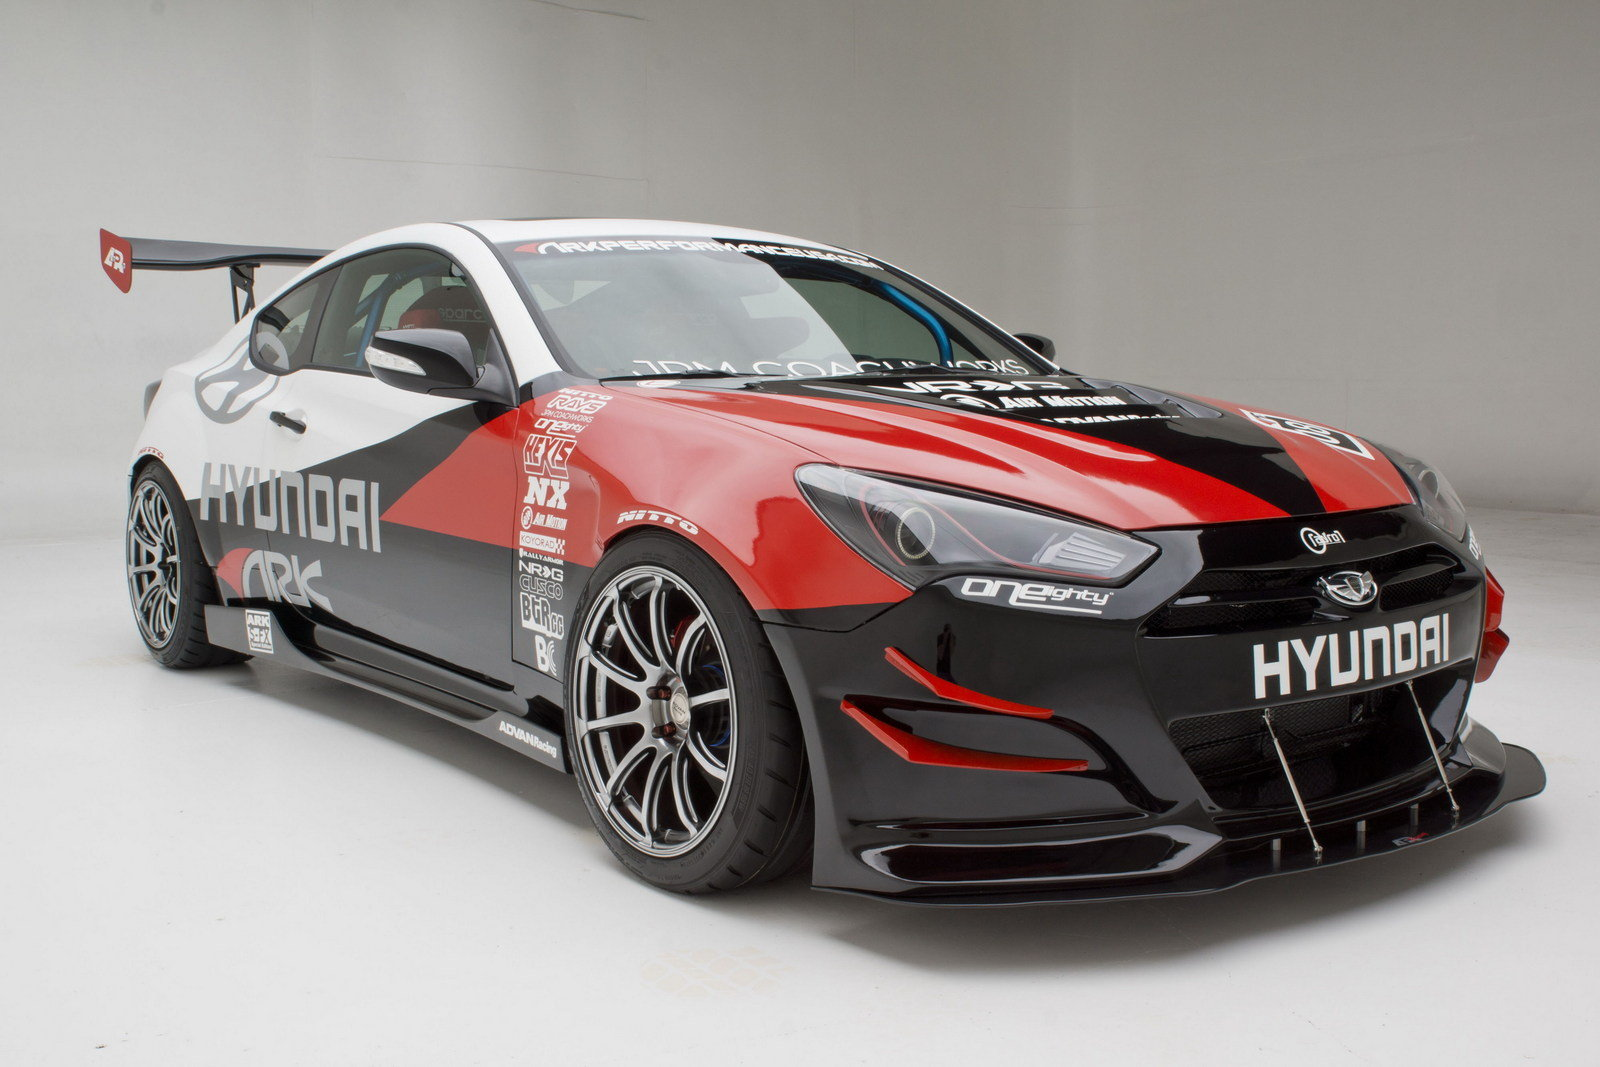 2013 hyundai genesis coupe r spec by ark picture 480094 car review top speed. Black Bedroom Furniture Sets. Home Design Ideas